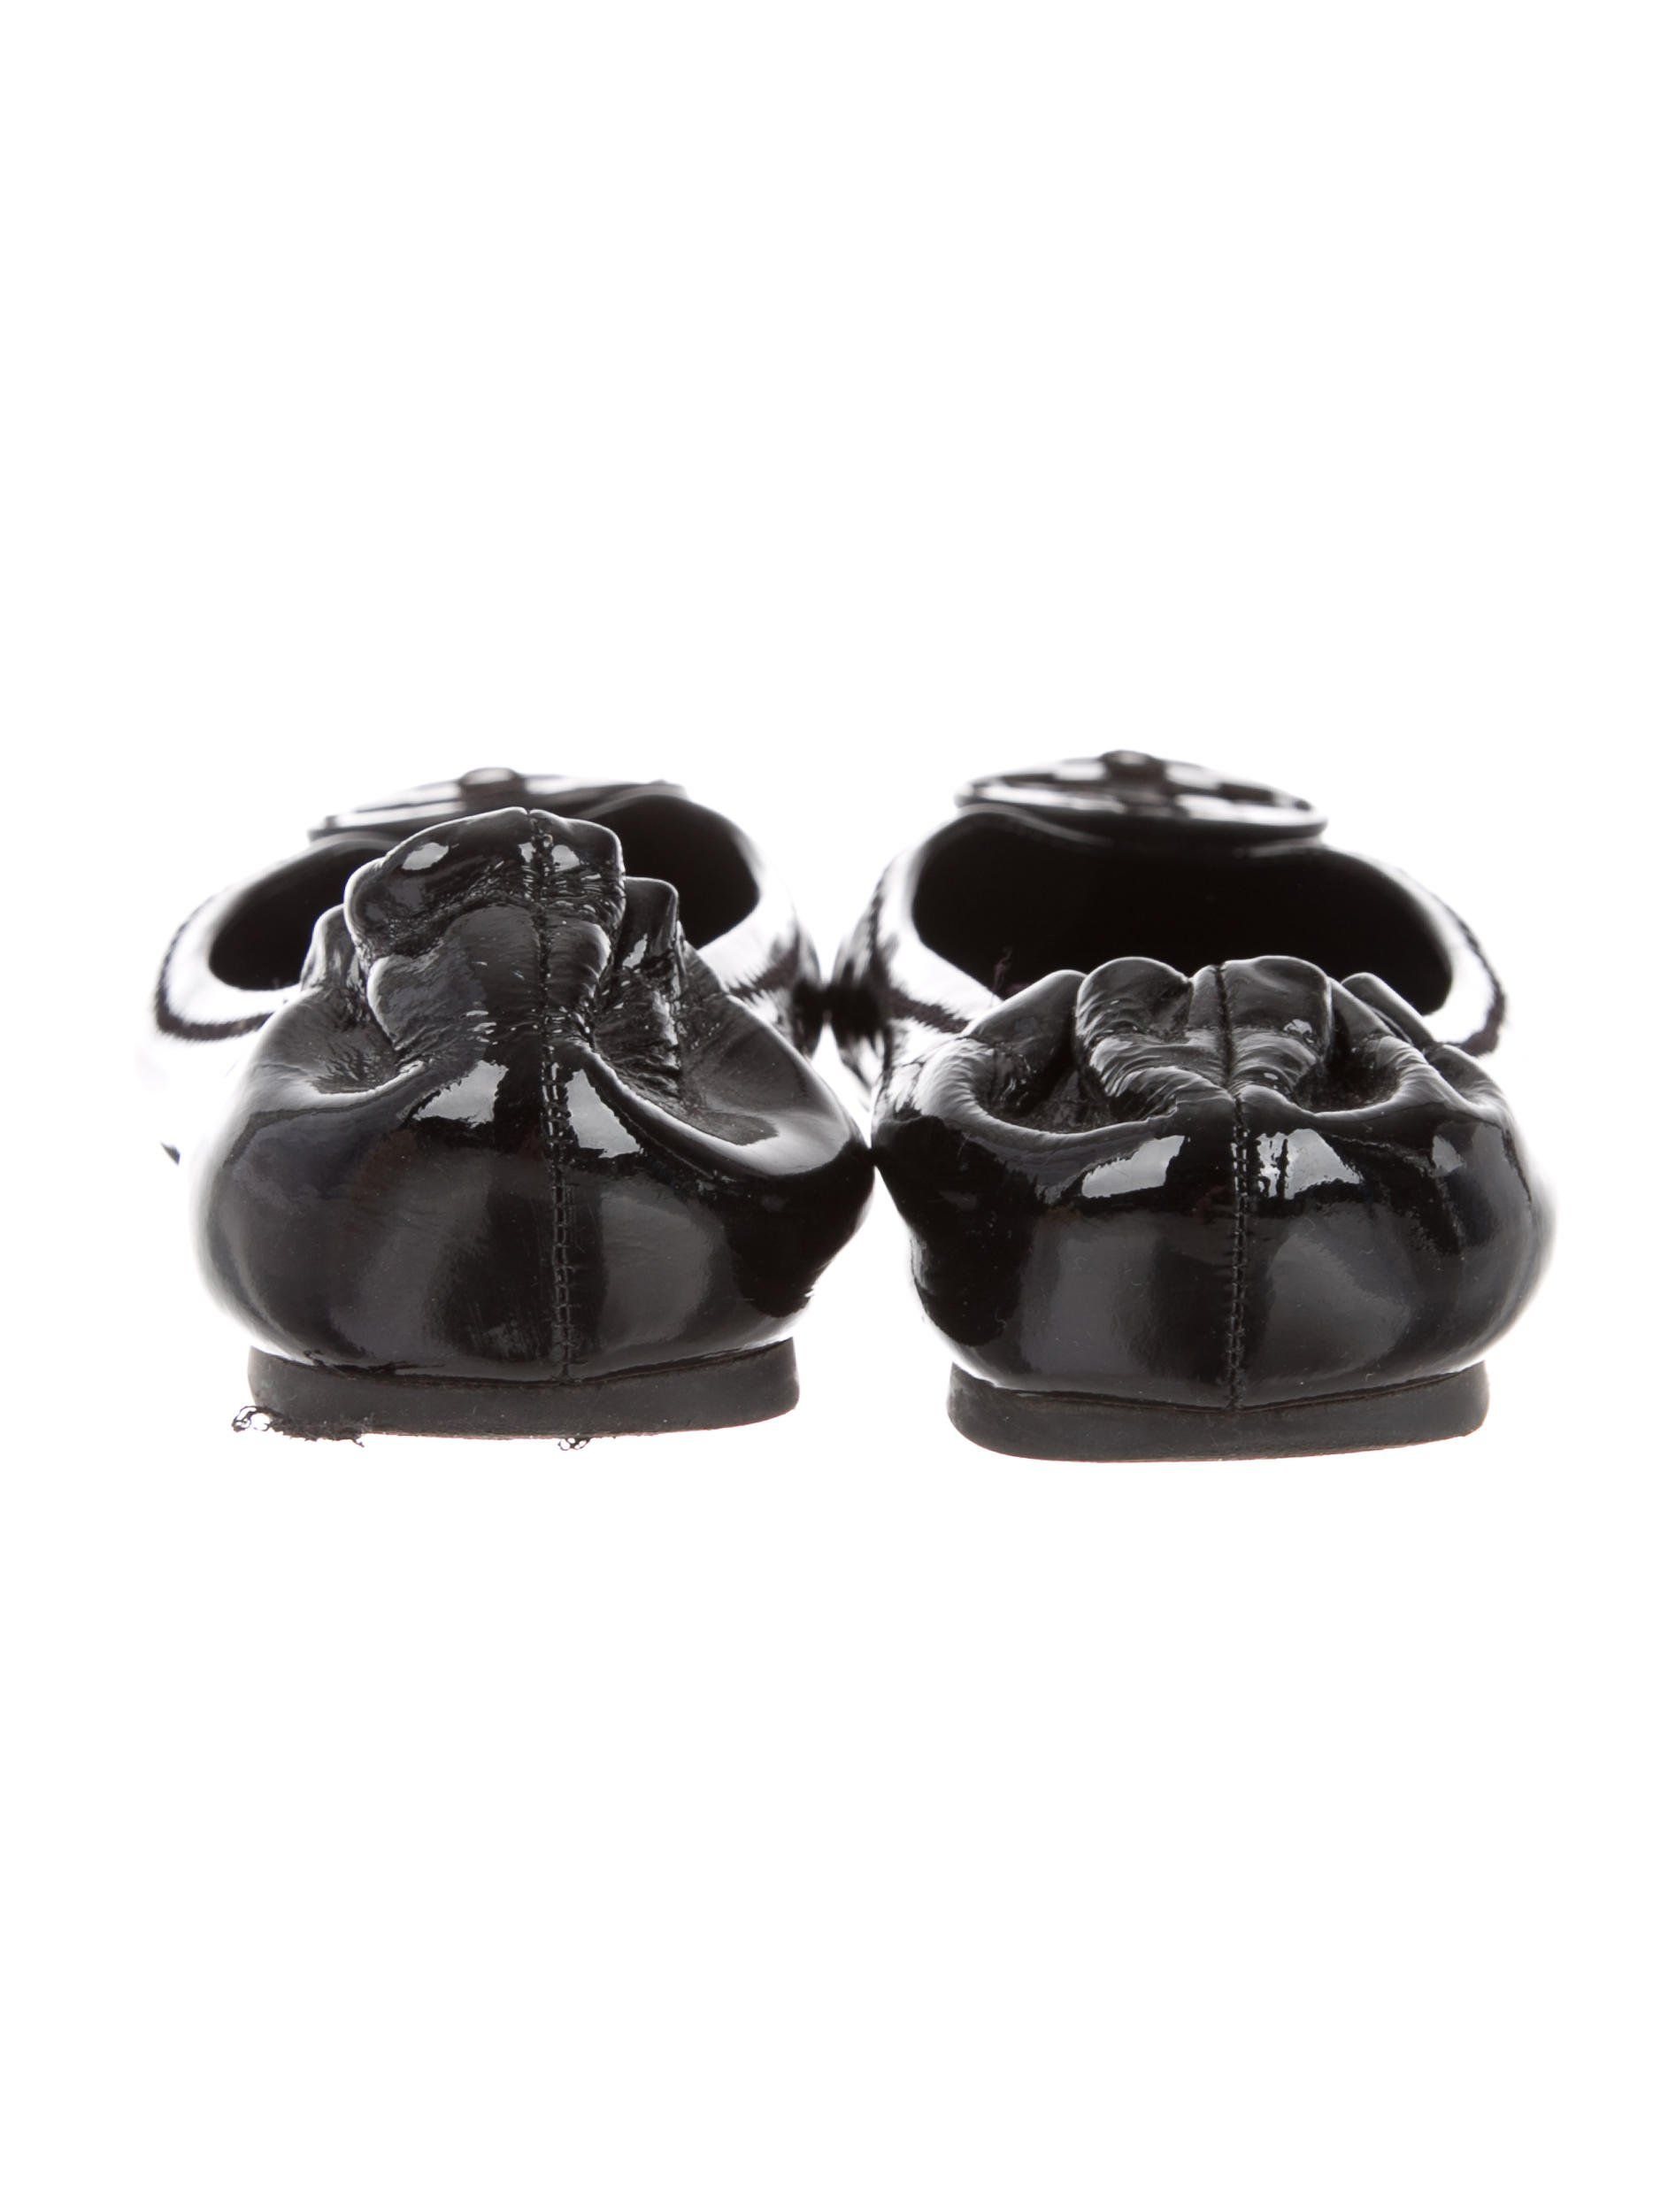 591ceb5bb41f4 Black patent leather Tory Burch flats with round toes